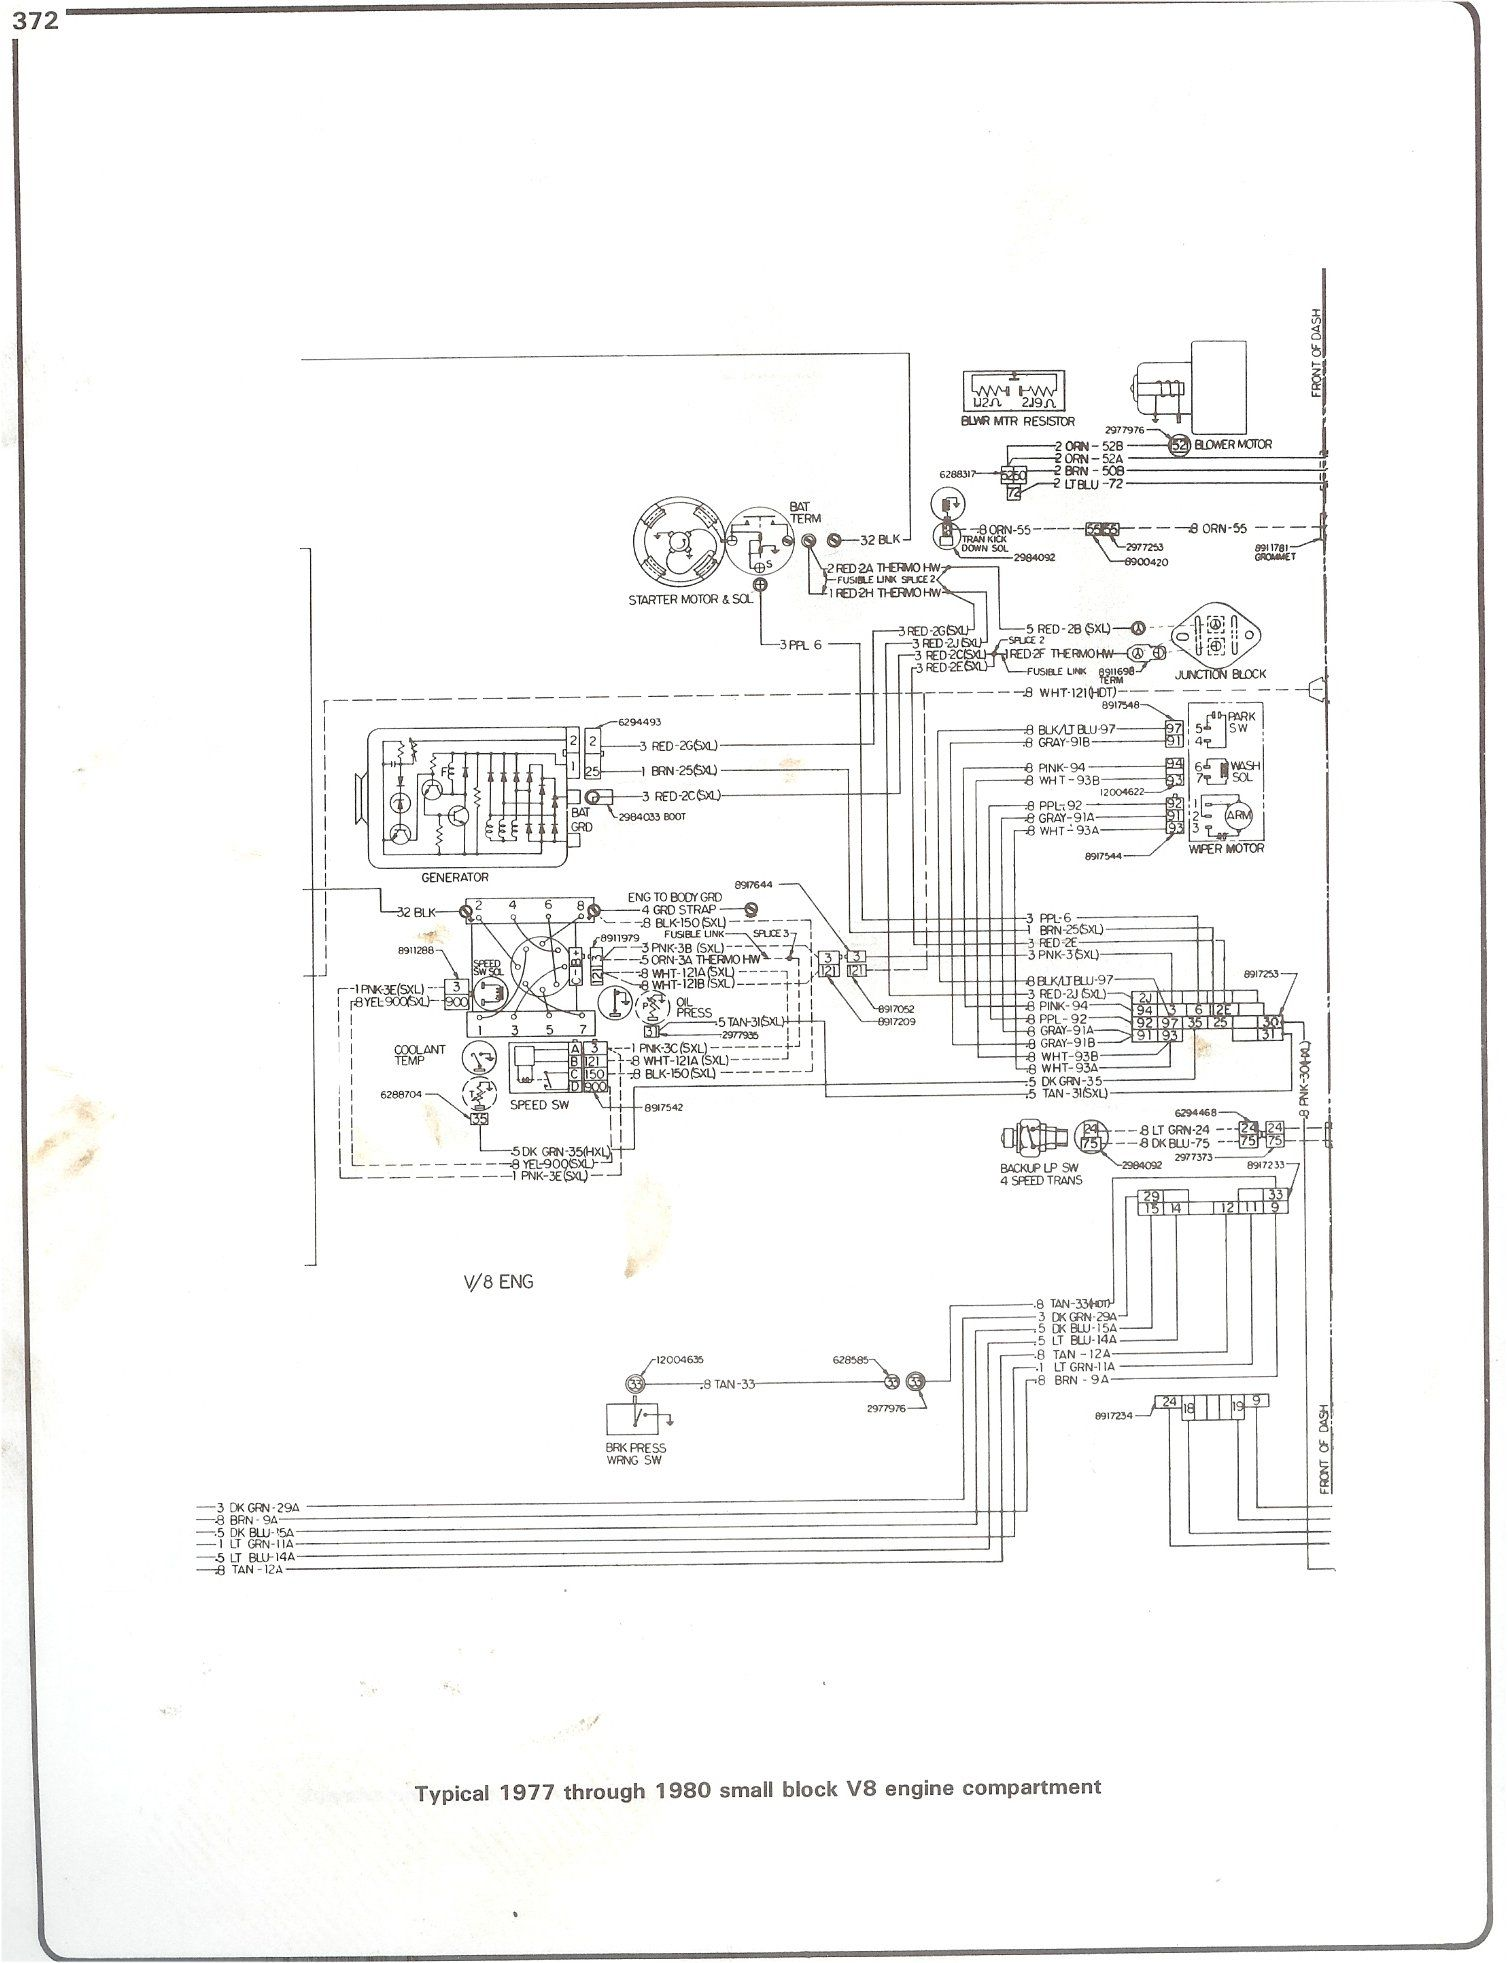 need a wiring diagram for 1981 camero camaro chevrolet cars trucks